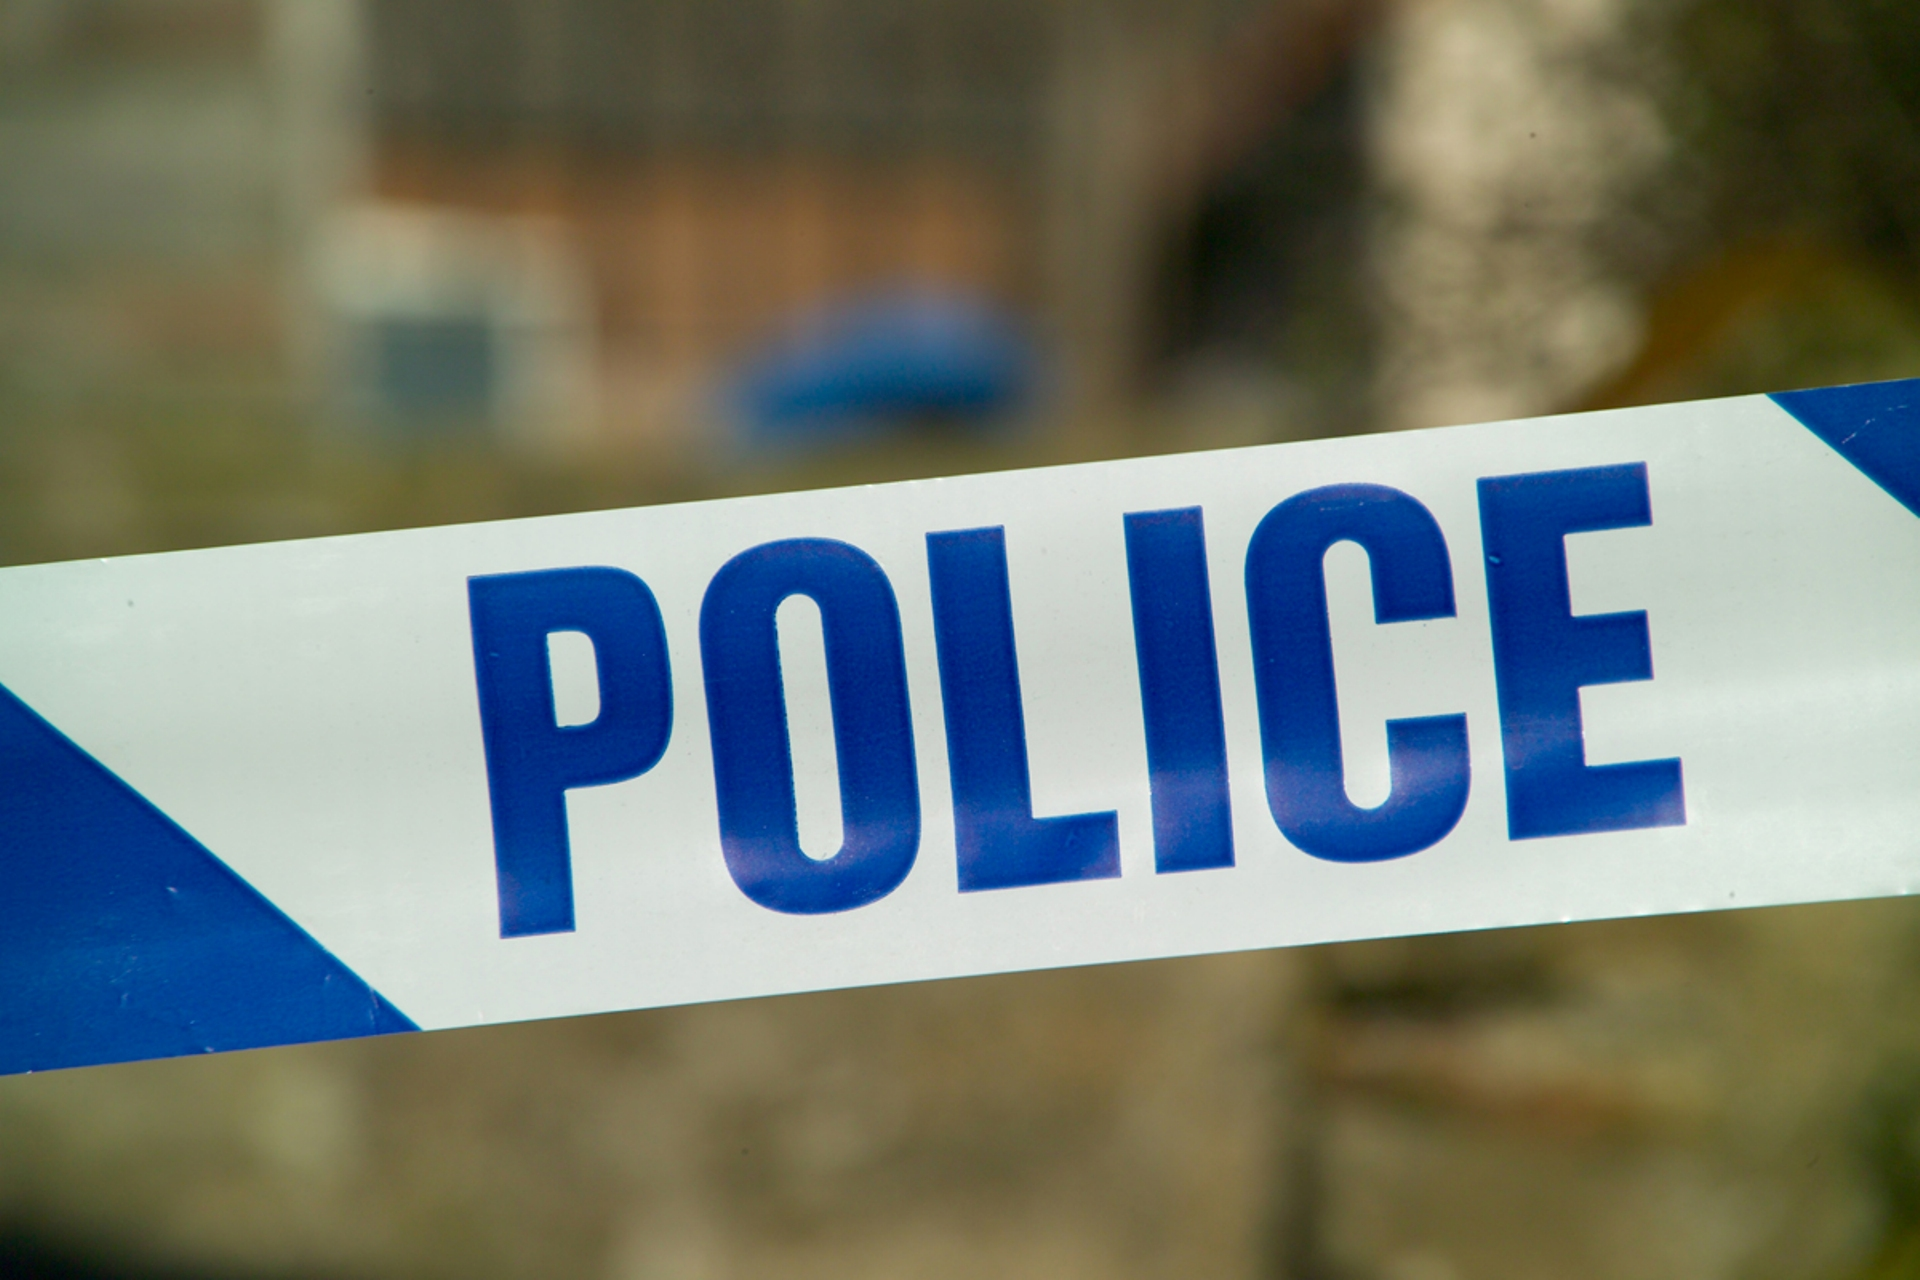 Police appeal after suspected sexual assault in Kidderminster